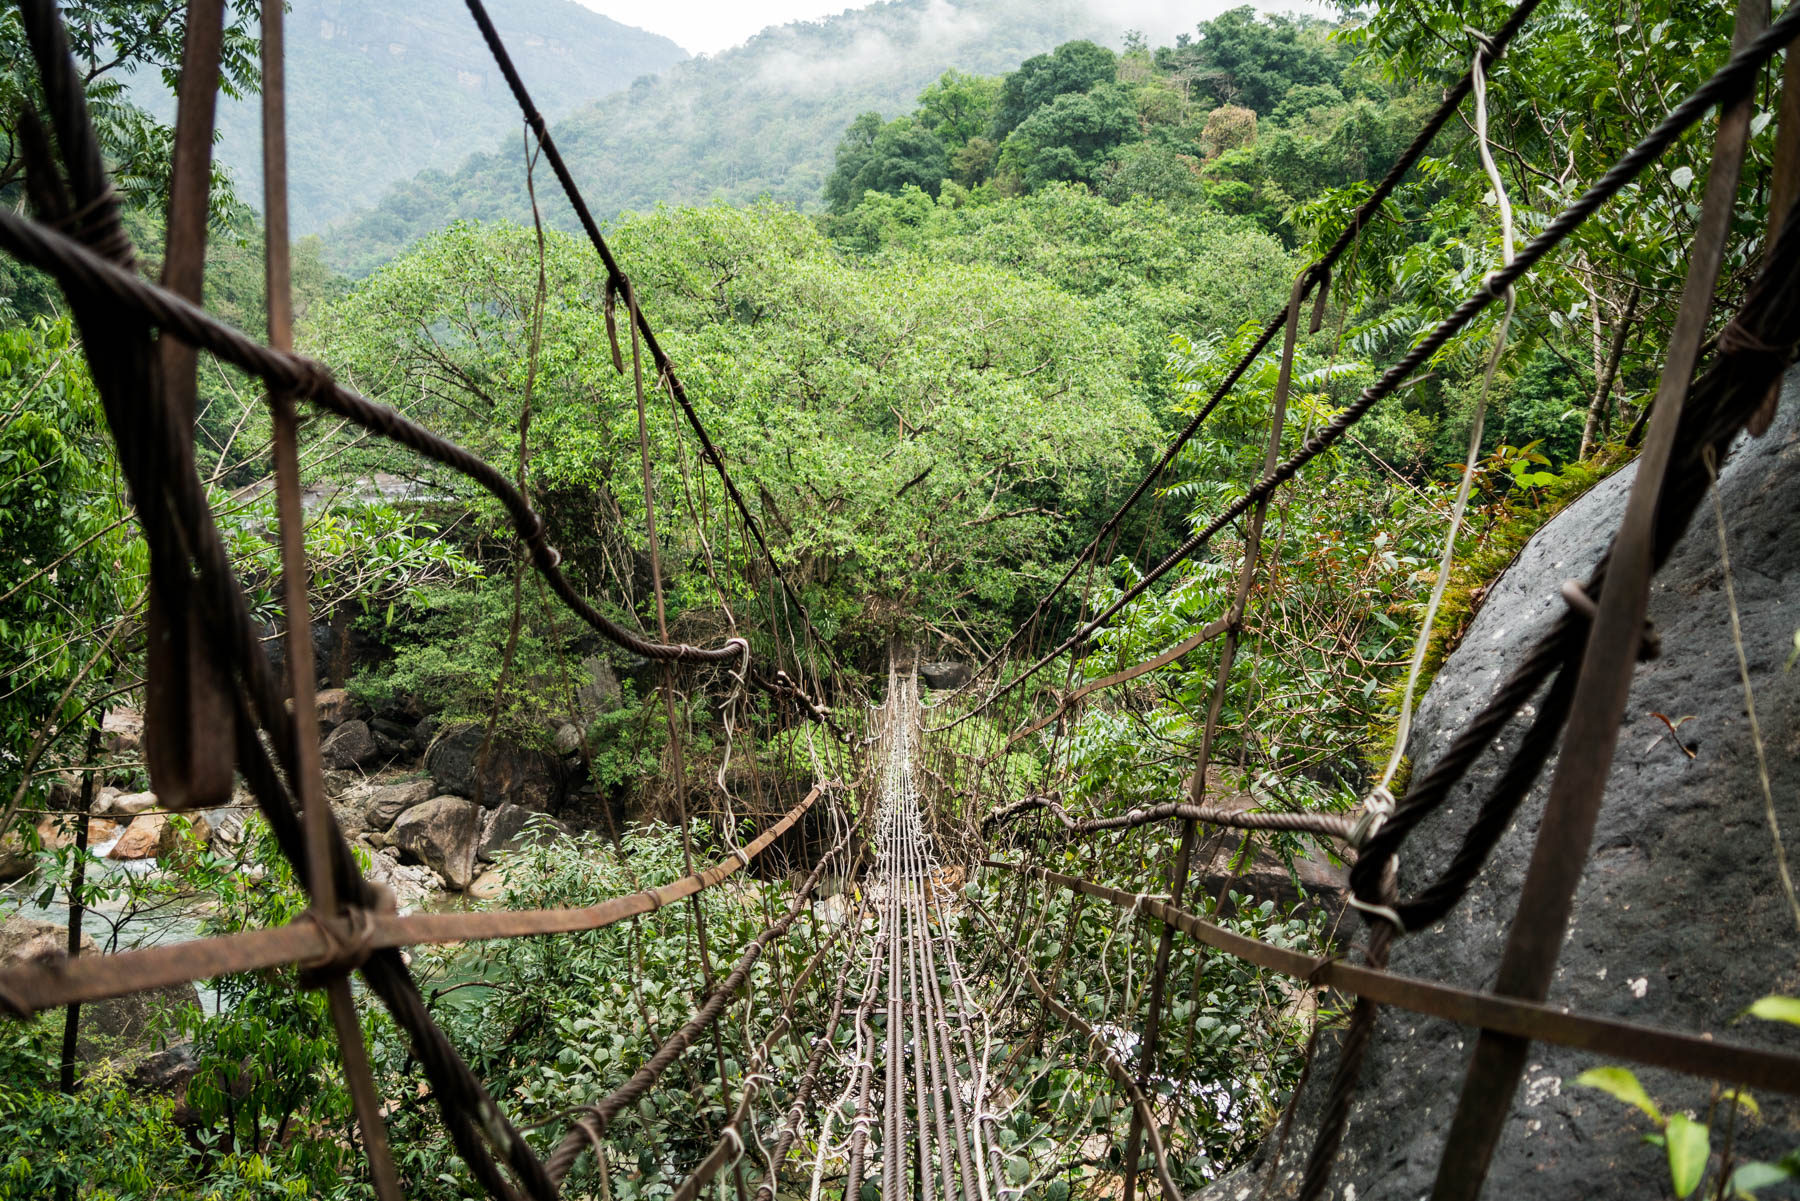 Photo essay of Nongriat and the living root bridges of Meghalaya, India - A cable suspension bridge near Nongriat - Lost With Purpose